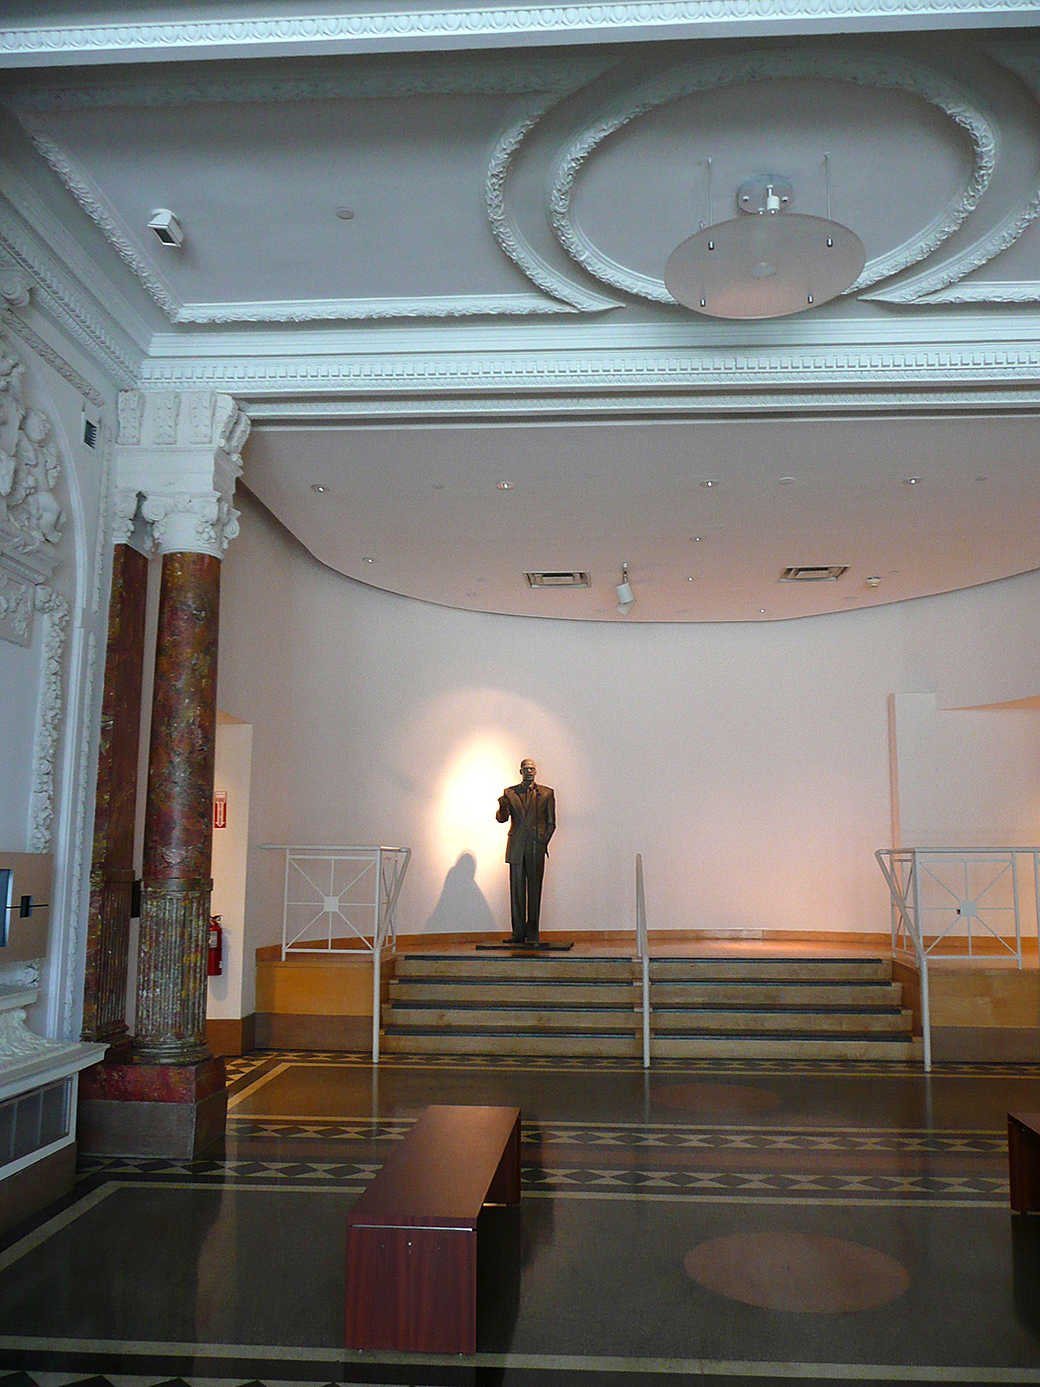 The Audubon Ballroom is most famous as the site where Malcolm X was killed on February 21, 1965.